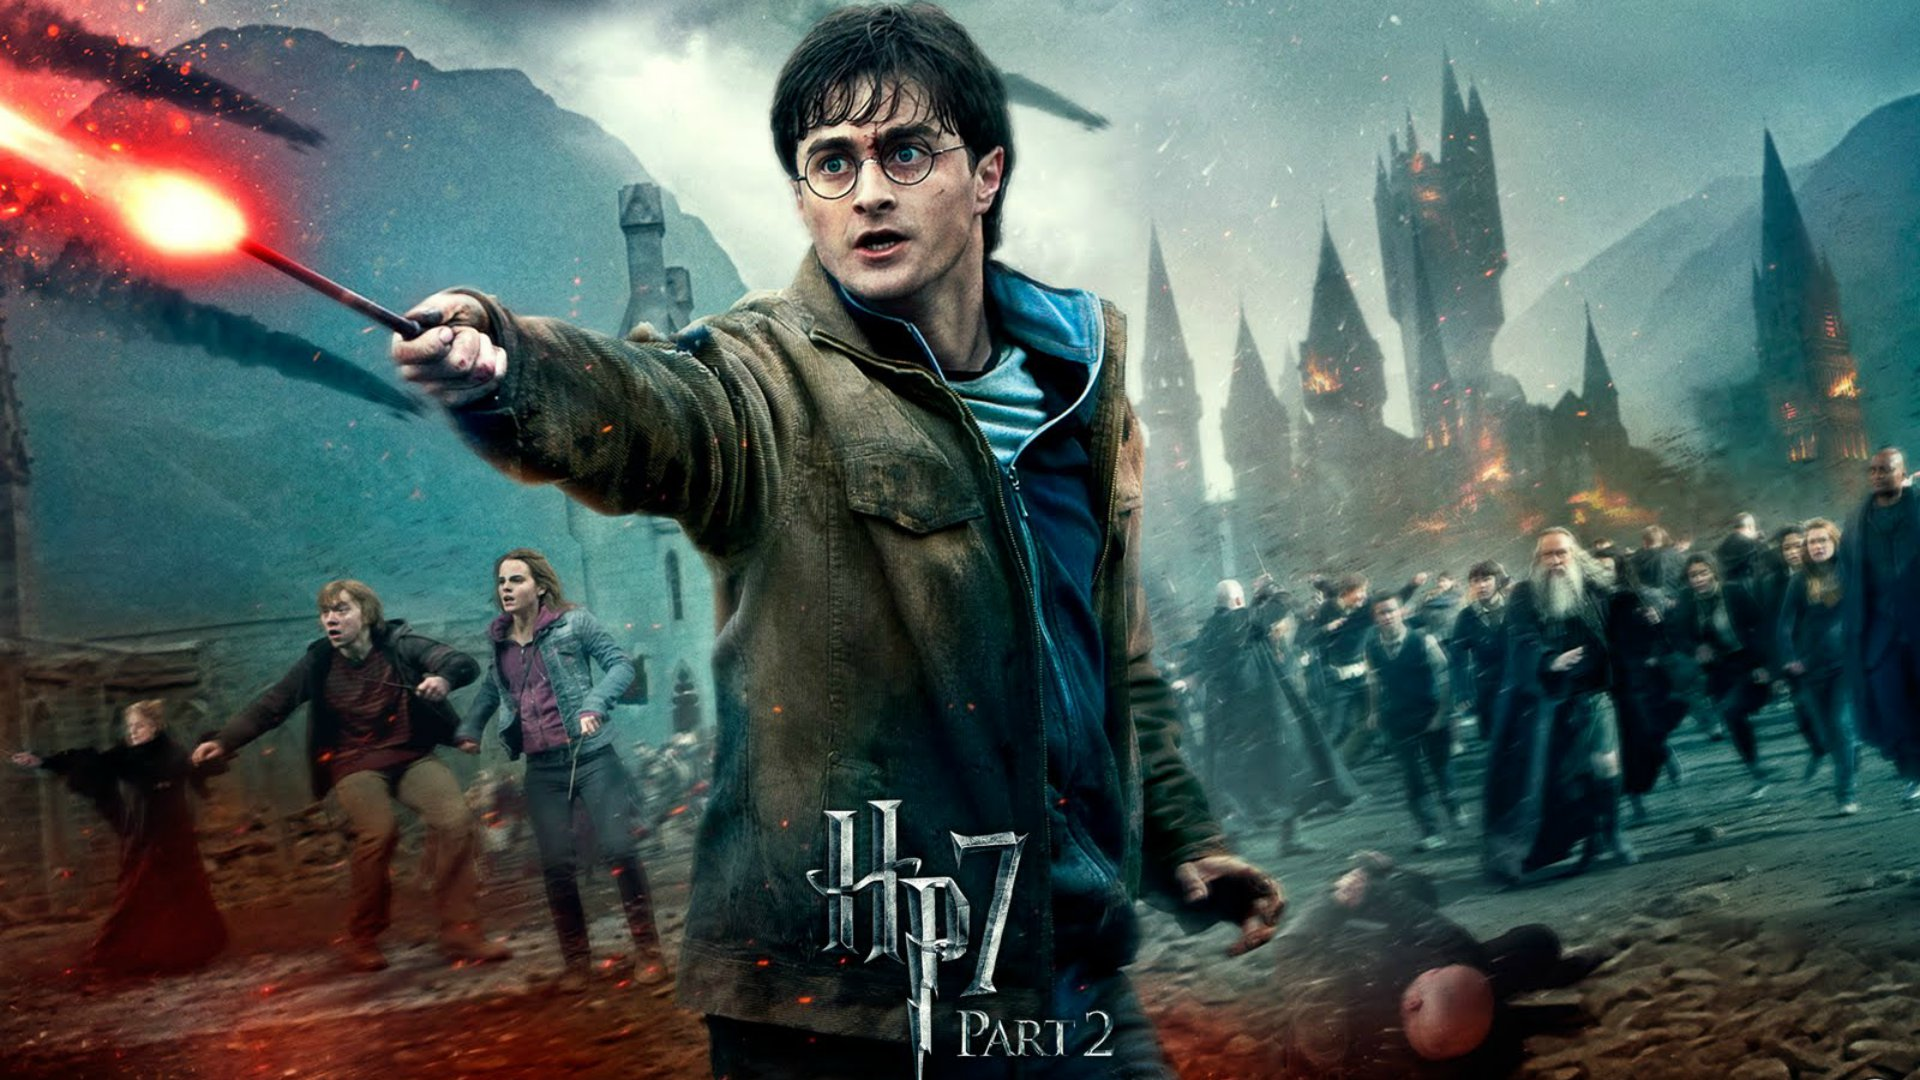 download harry potter 2 pc game